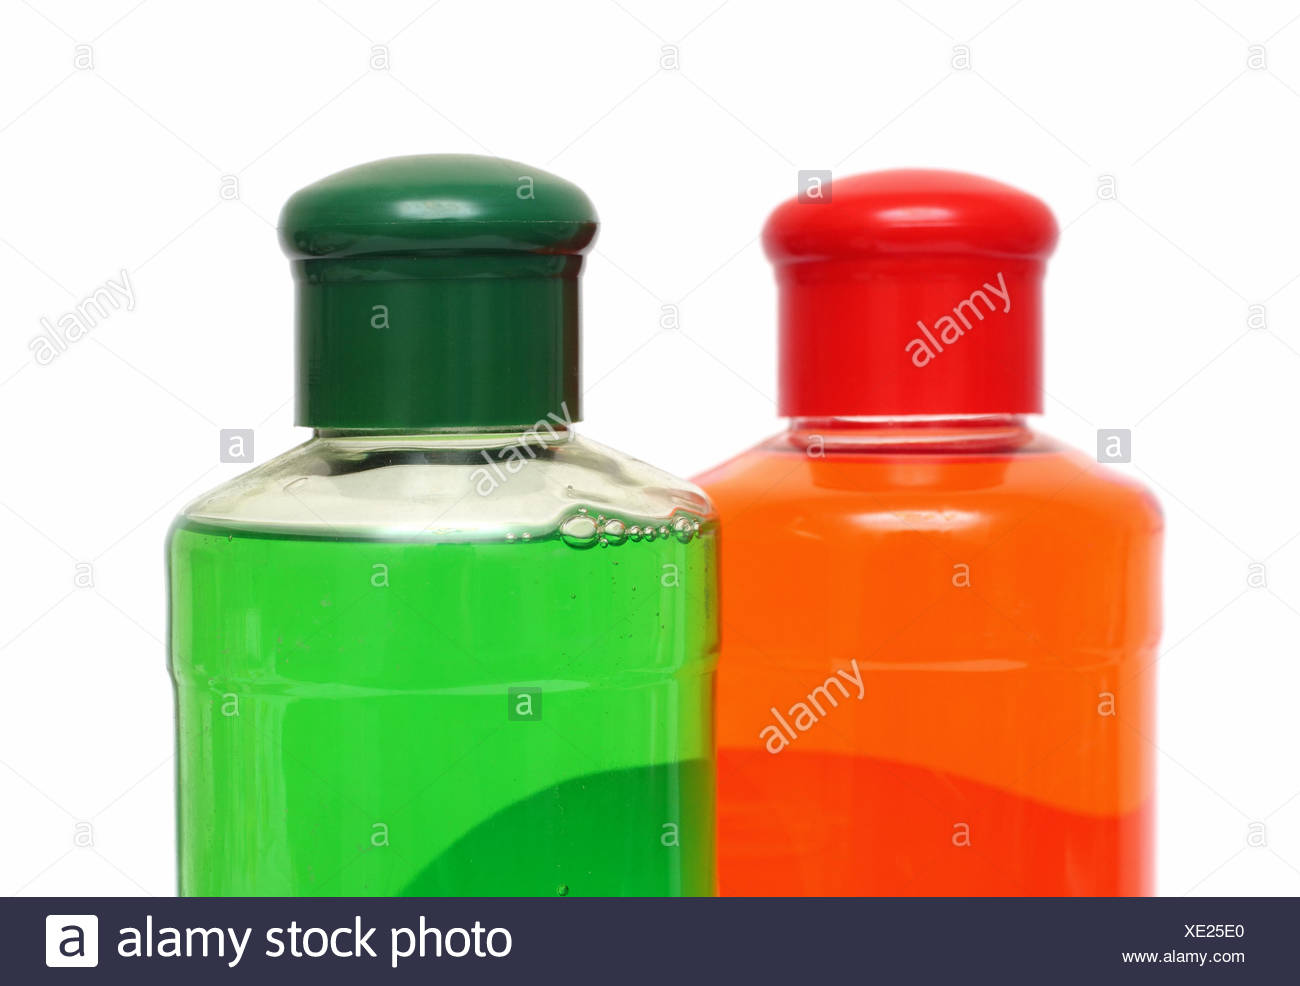 two bottles with shampoo - Stock Image